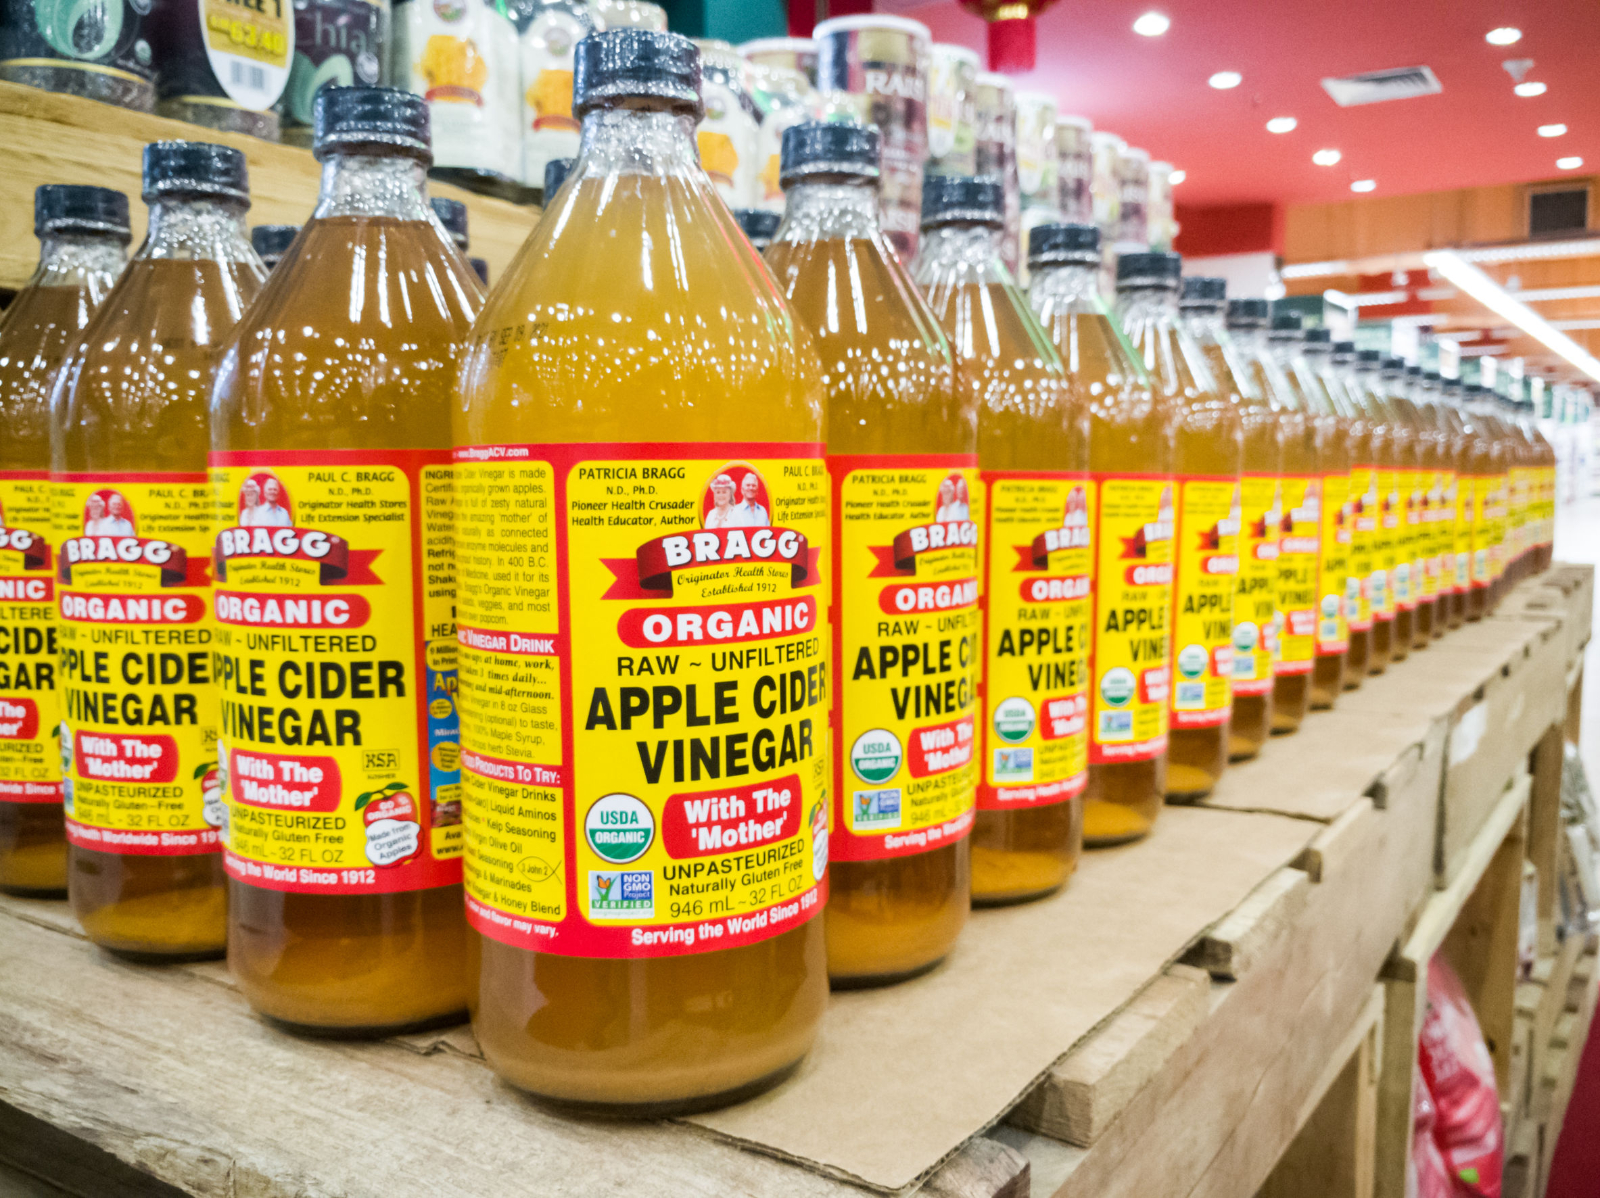 apple cider vinegar glass bottles on shelf